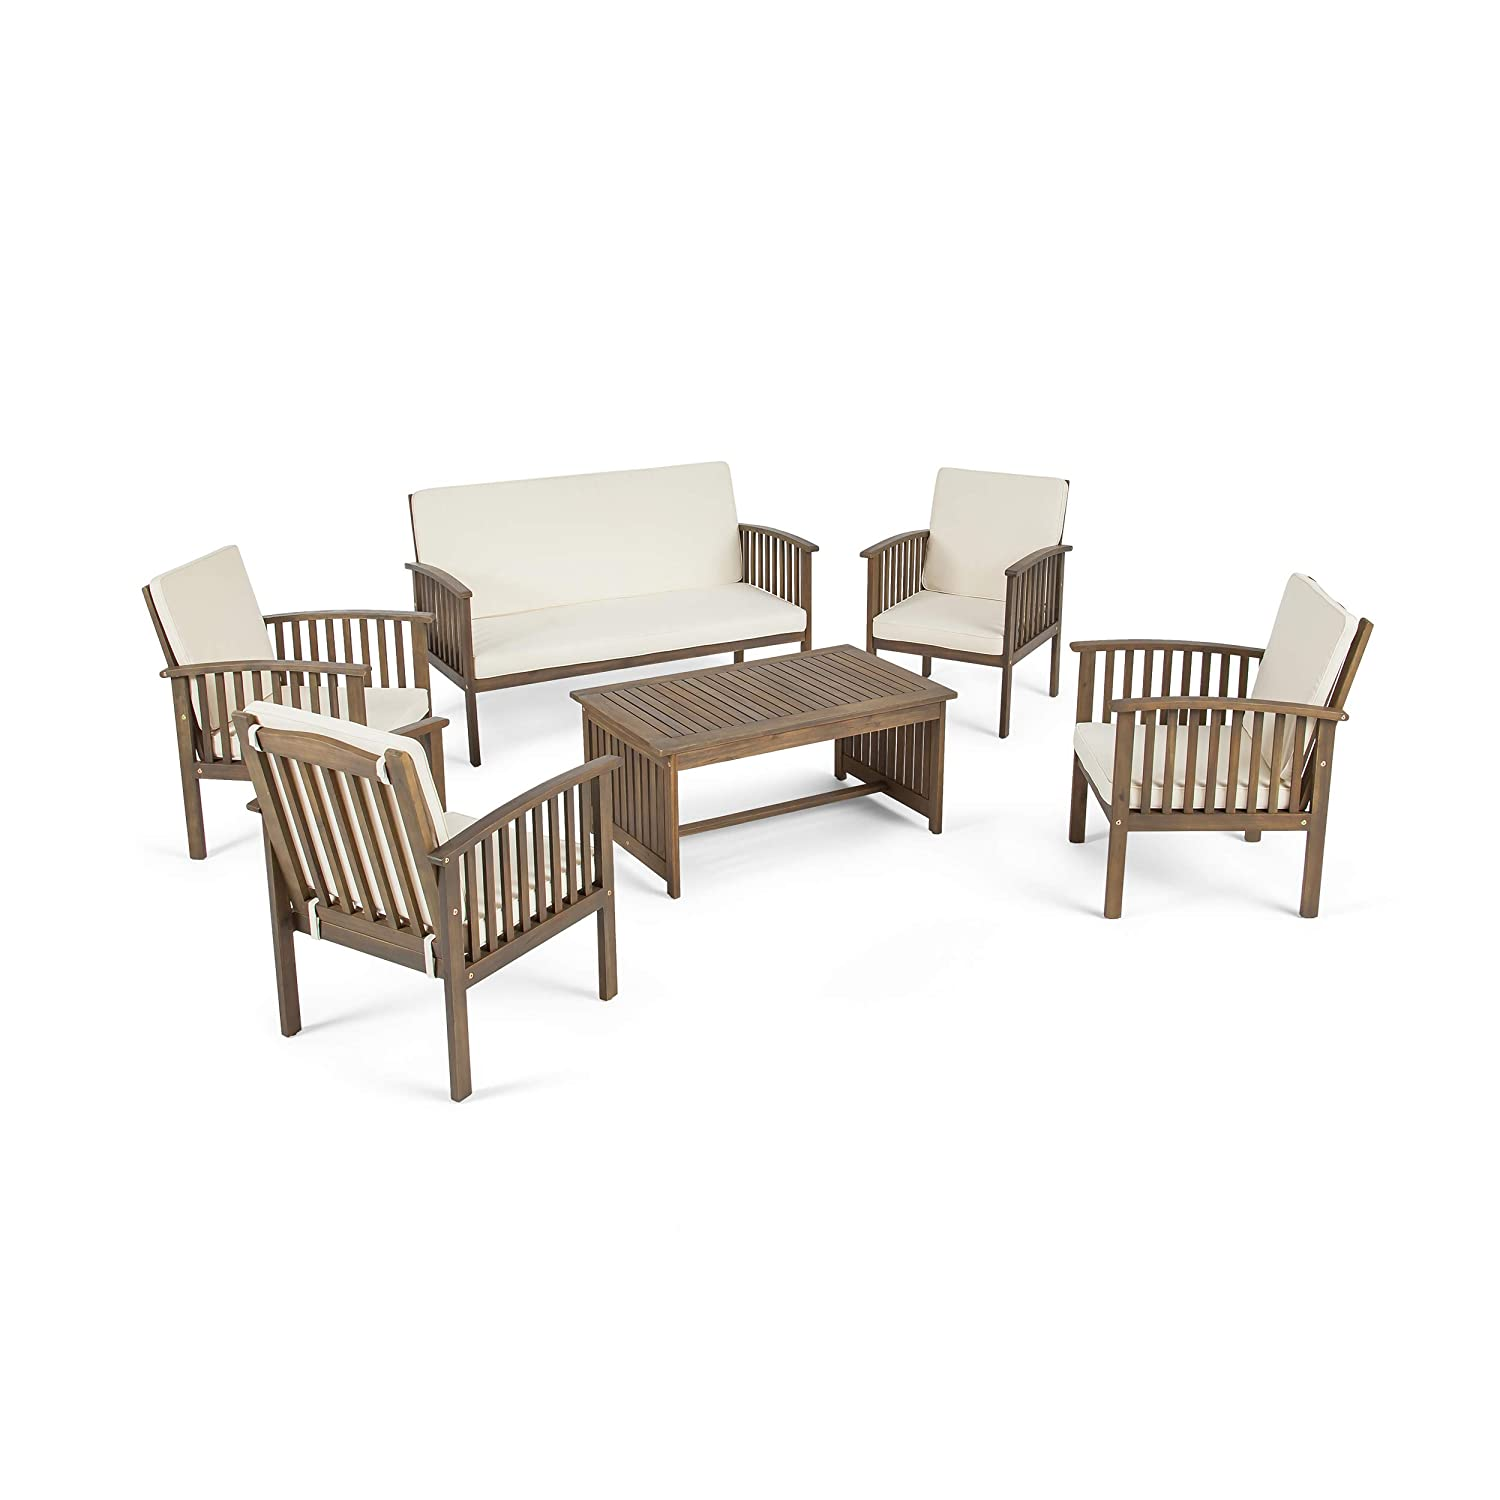 Great Deal Furniture Parry Outdoor 6-Seater Acacia Wood Chat Set, Gray Finish and Cream